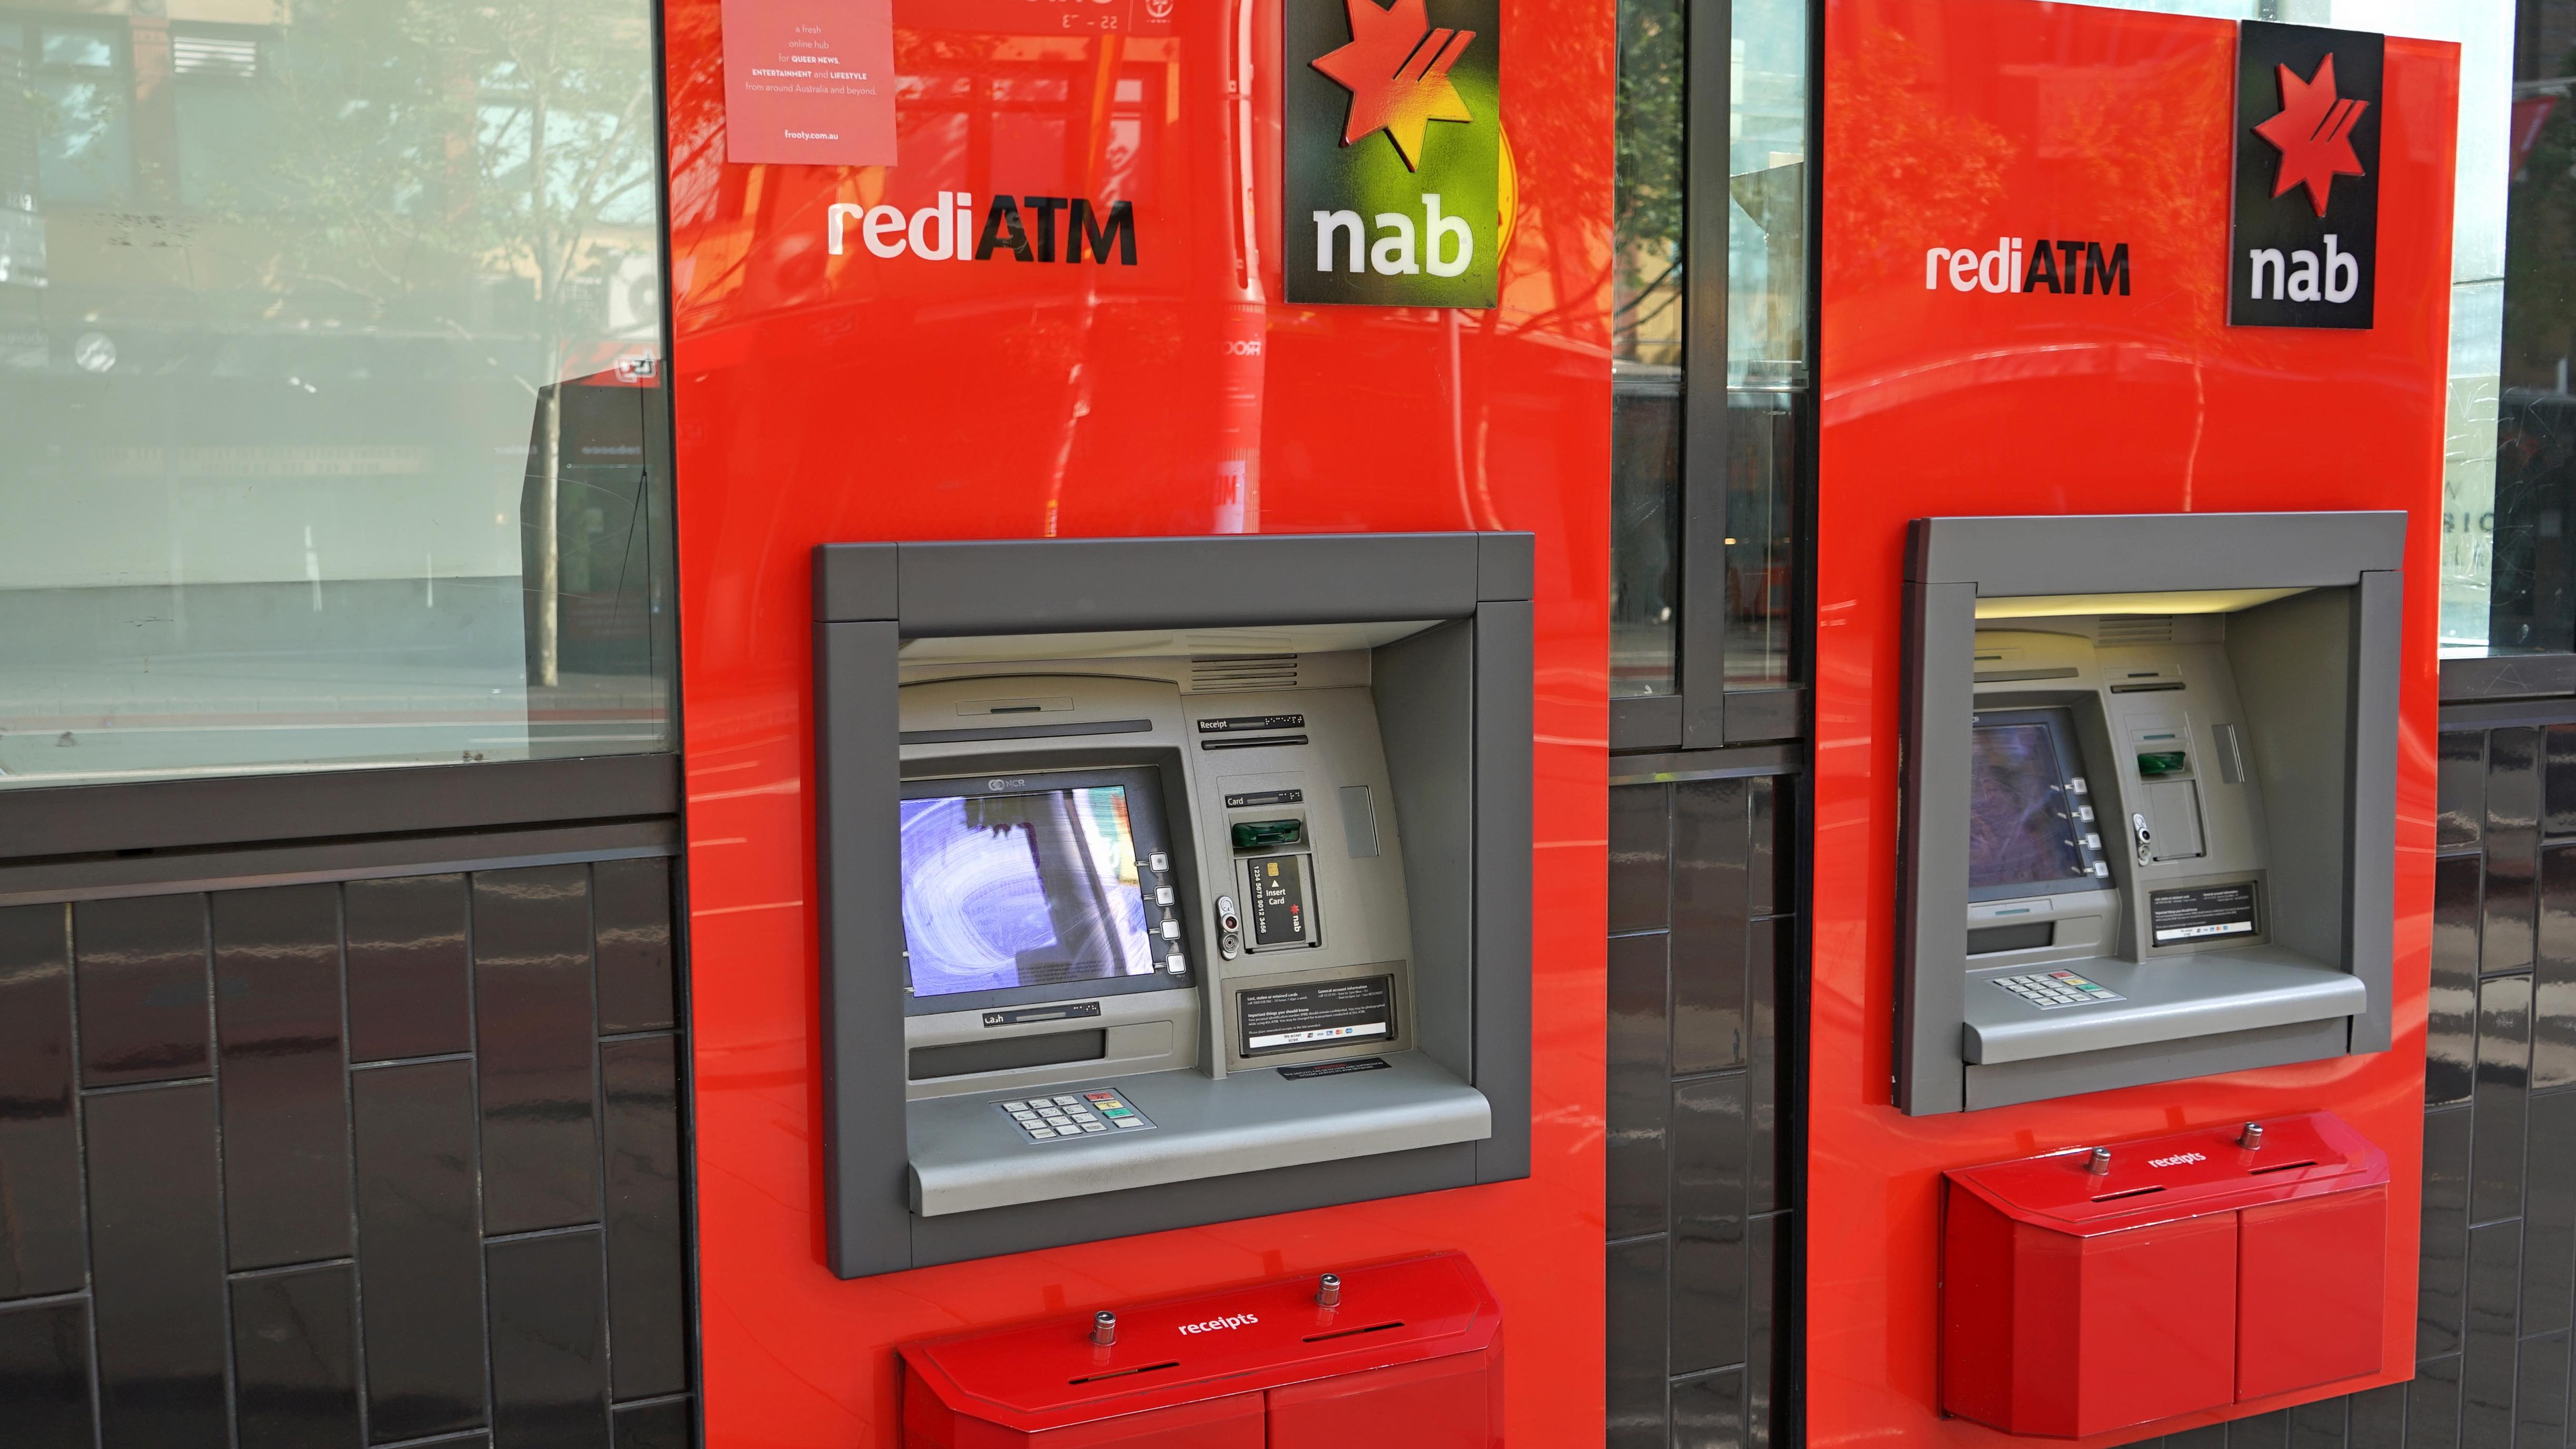 Unused NAB ATM during COVID as bank support measures are announced during 2021 lockdown..